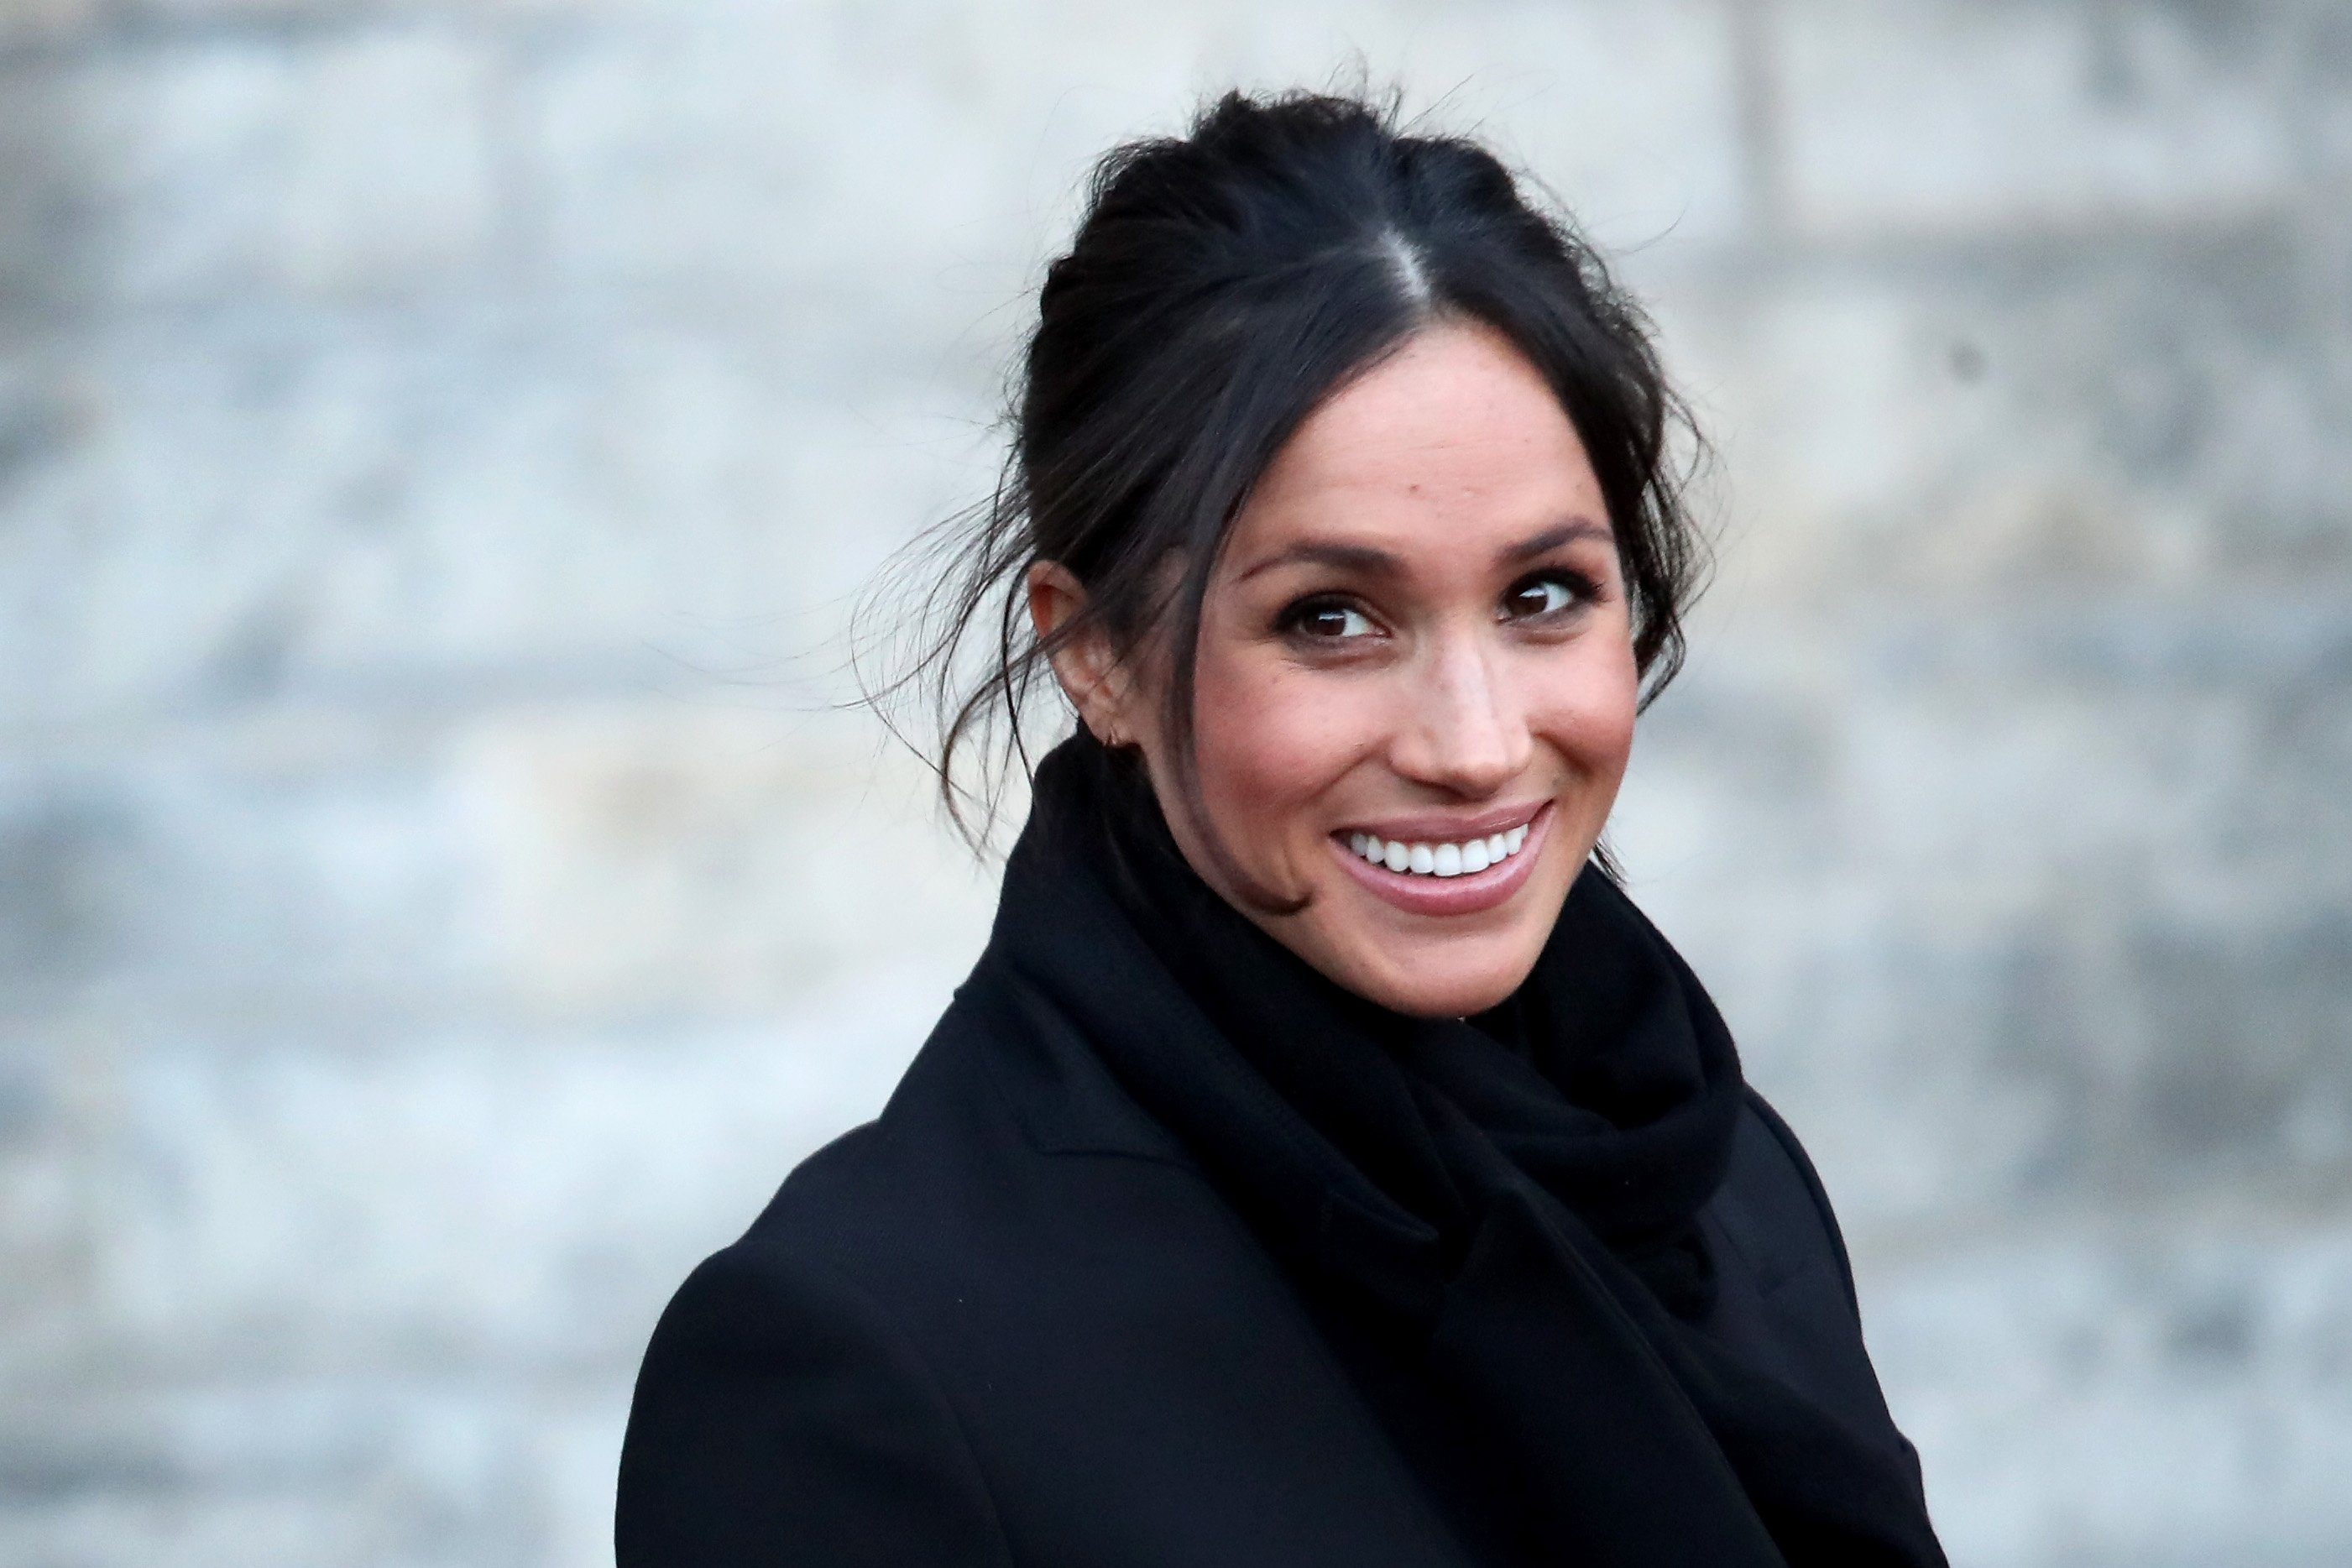 Meghan Markle departs from a walkabout at Cardiff Castle on January 18, 2018 in Cardiff, Wales | Photo: Getty Images